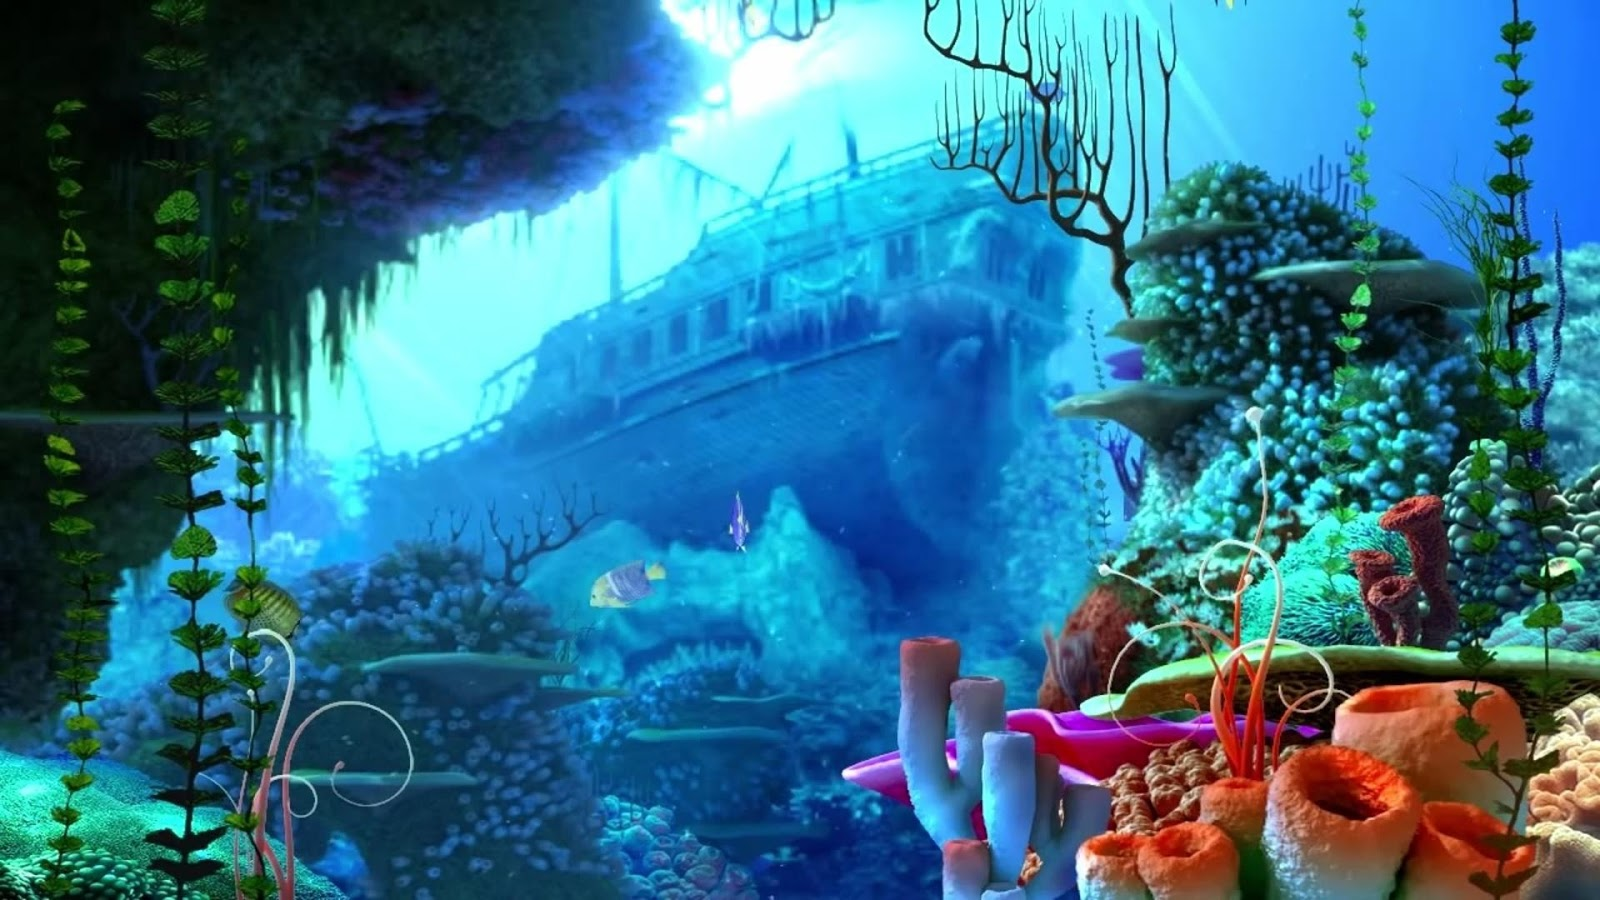 Fish aquarium live wallpaper - 3d Live Fish Wallpaper Live Wallpaper Fish Tank